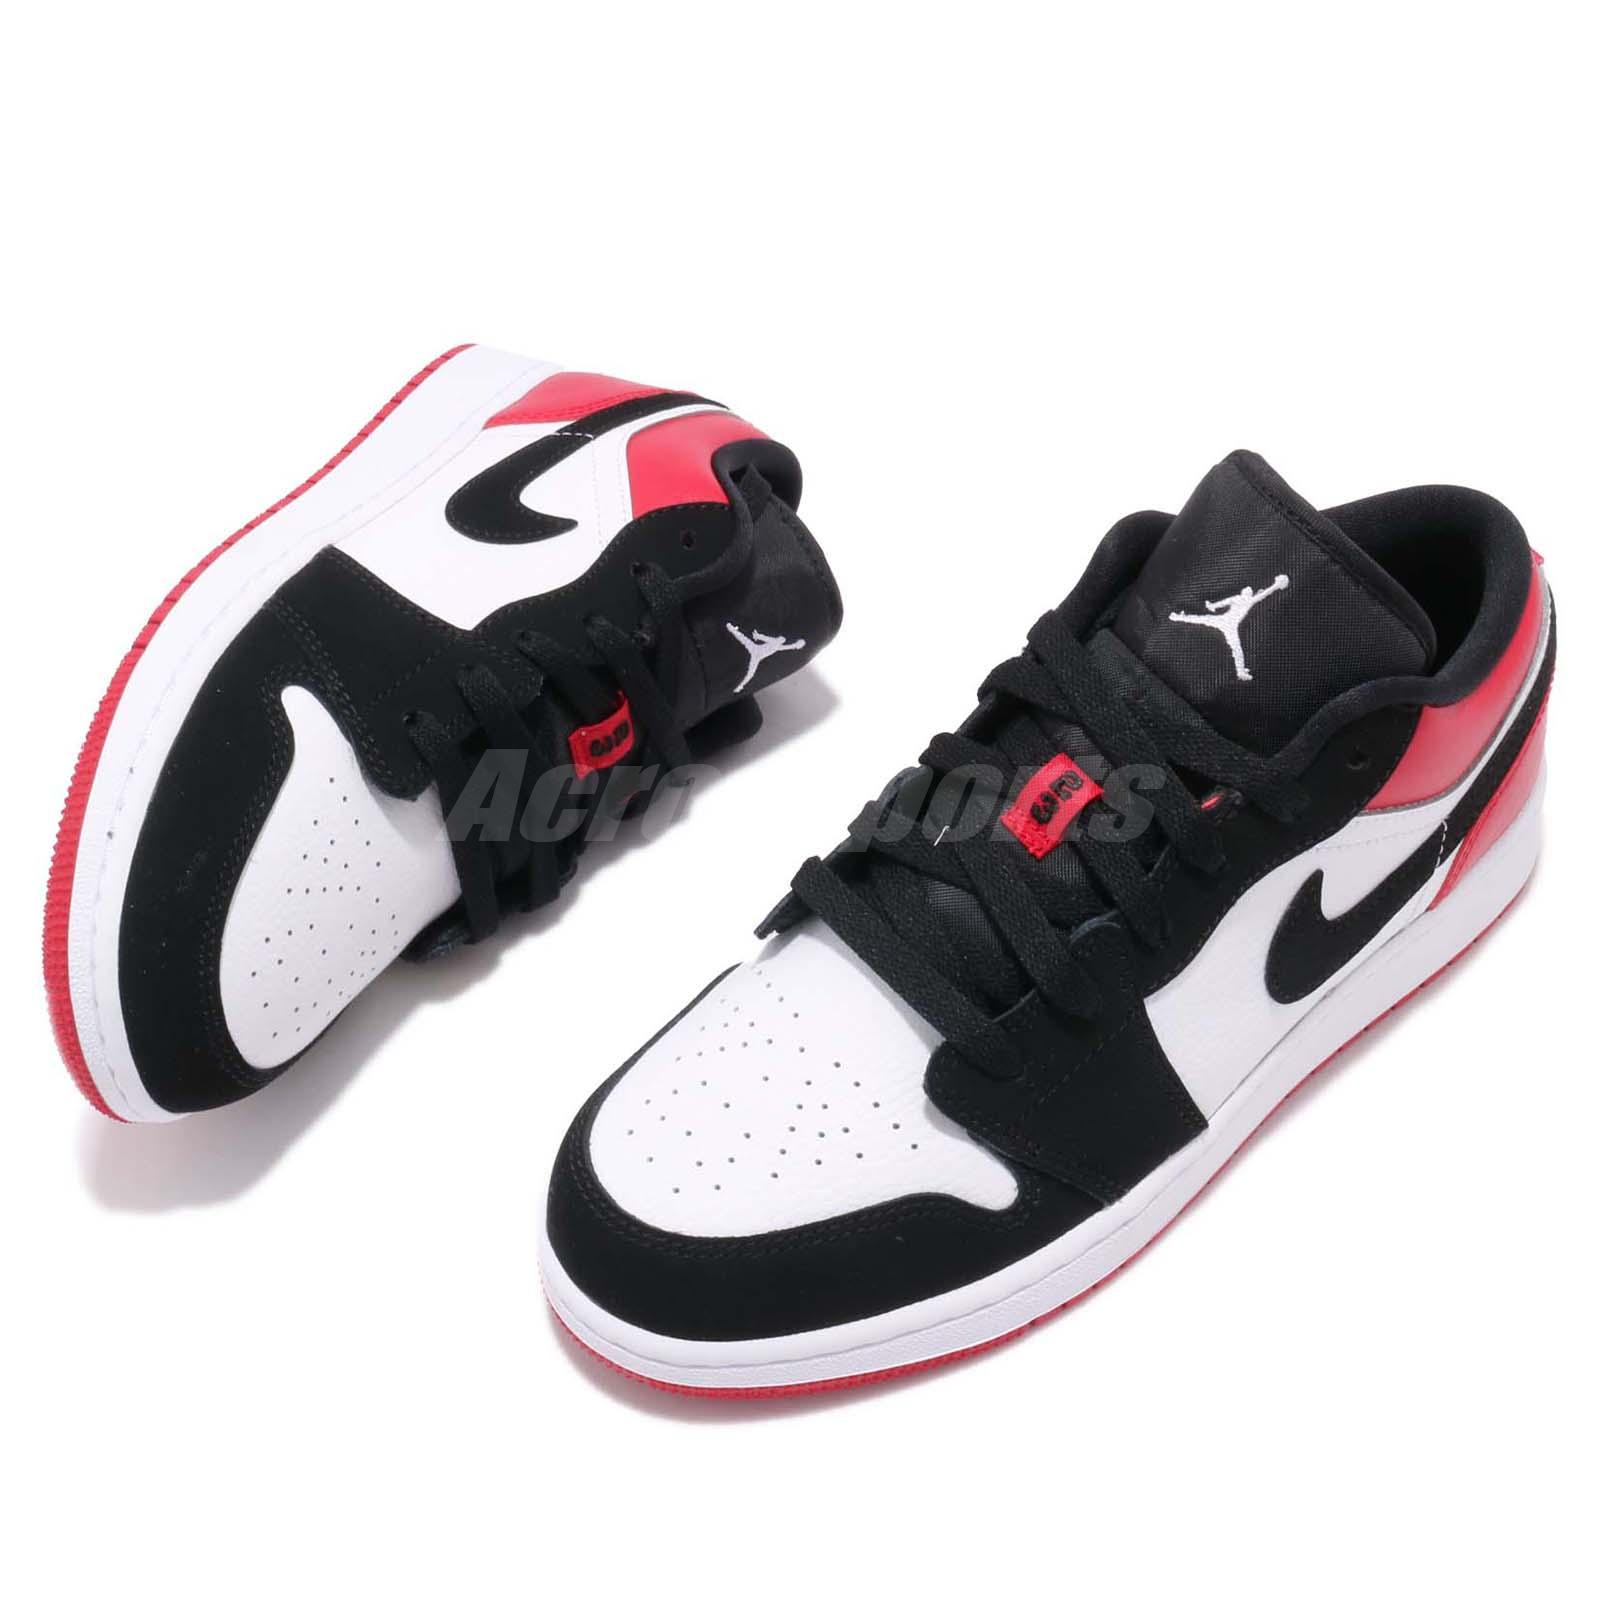 timeless design 2bced 1af7e Nike Air Jordan 1 Low GS I AJ1 Black Toe Kid Youth Women Shoe ...